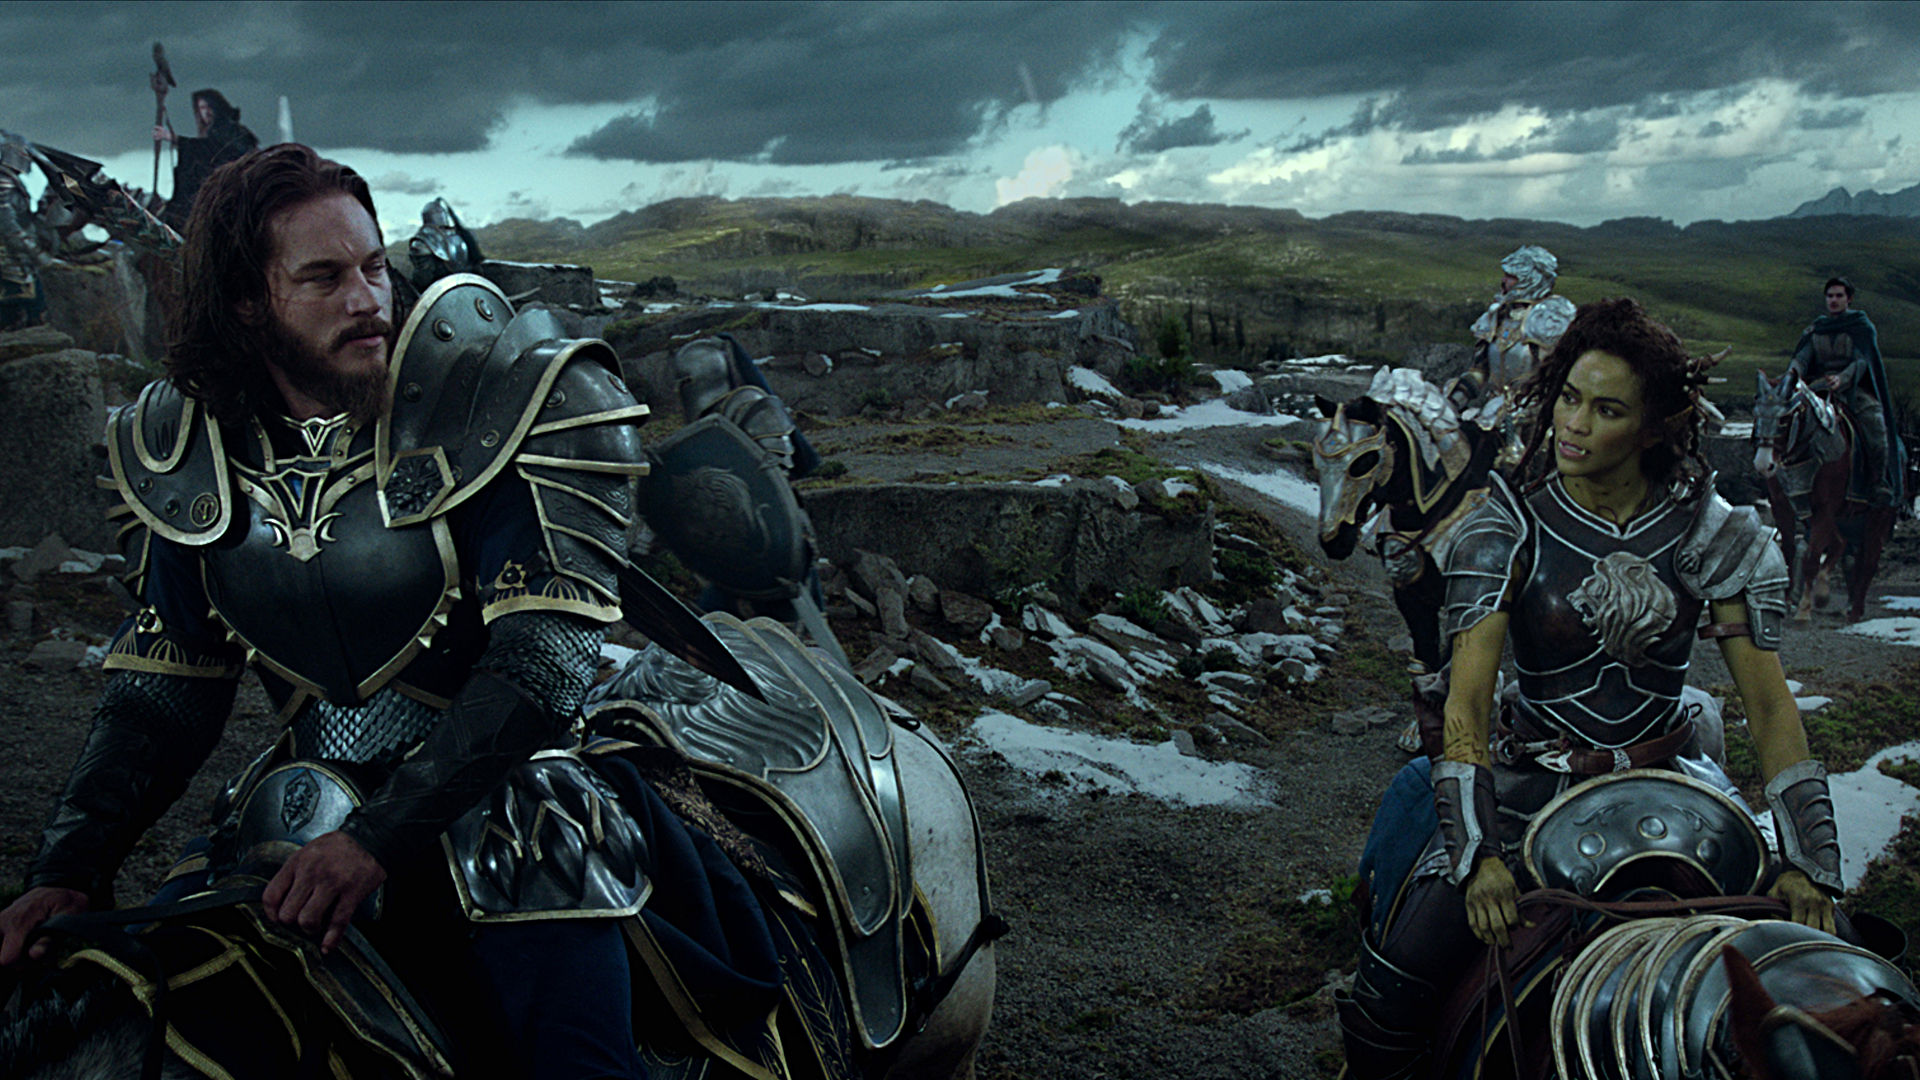 Warcraft Director Has Conflicting Feelings Towards Movie warcraft movie images hi res 1